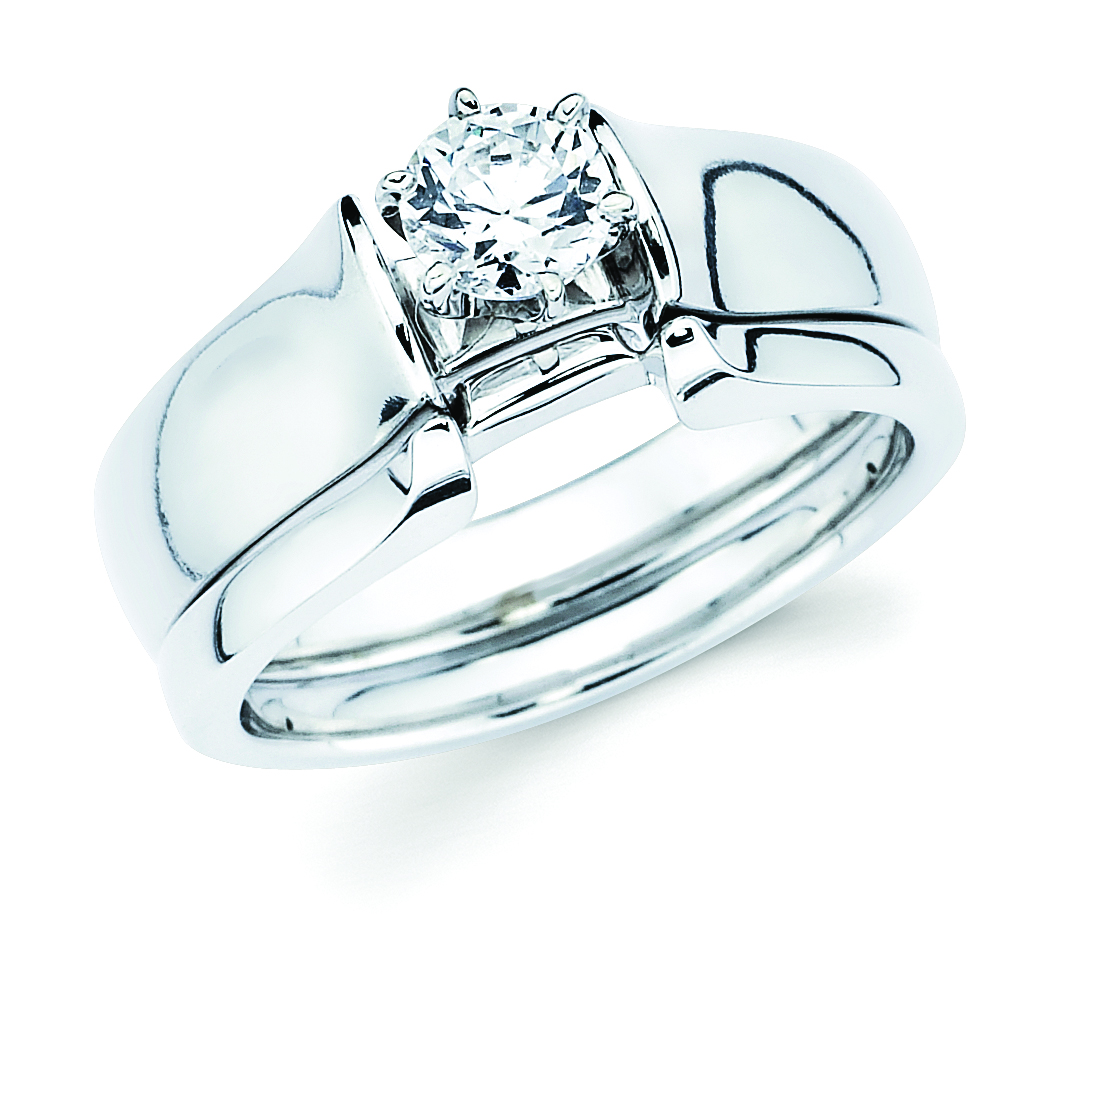 14k White Gold Engagement Set - Classic Bridal: Diamond Ring shown with 1/2 Ct. Round Center Stone in 14K Gold Wedding Band in 14K Gold Items also available to purchase separately